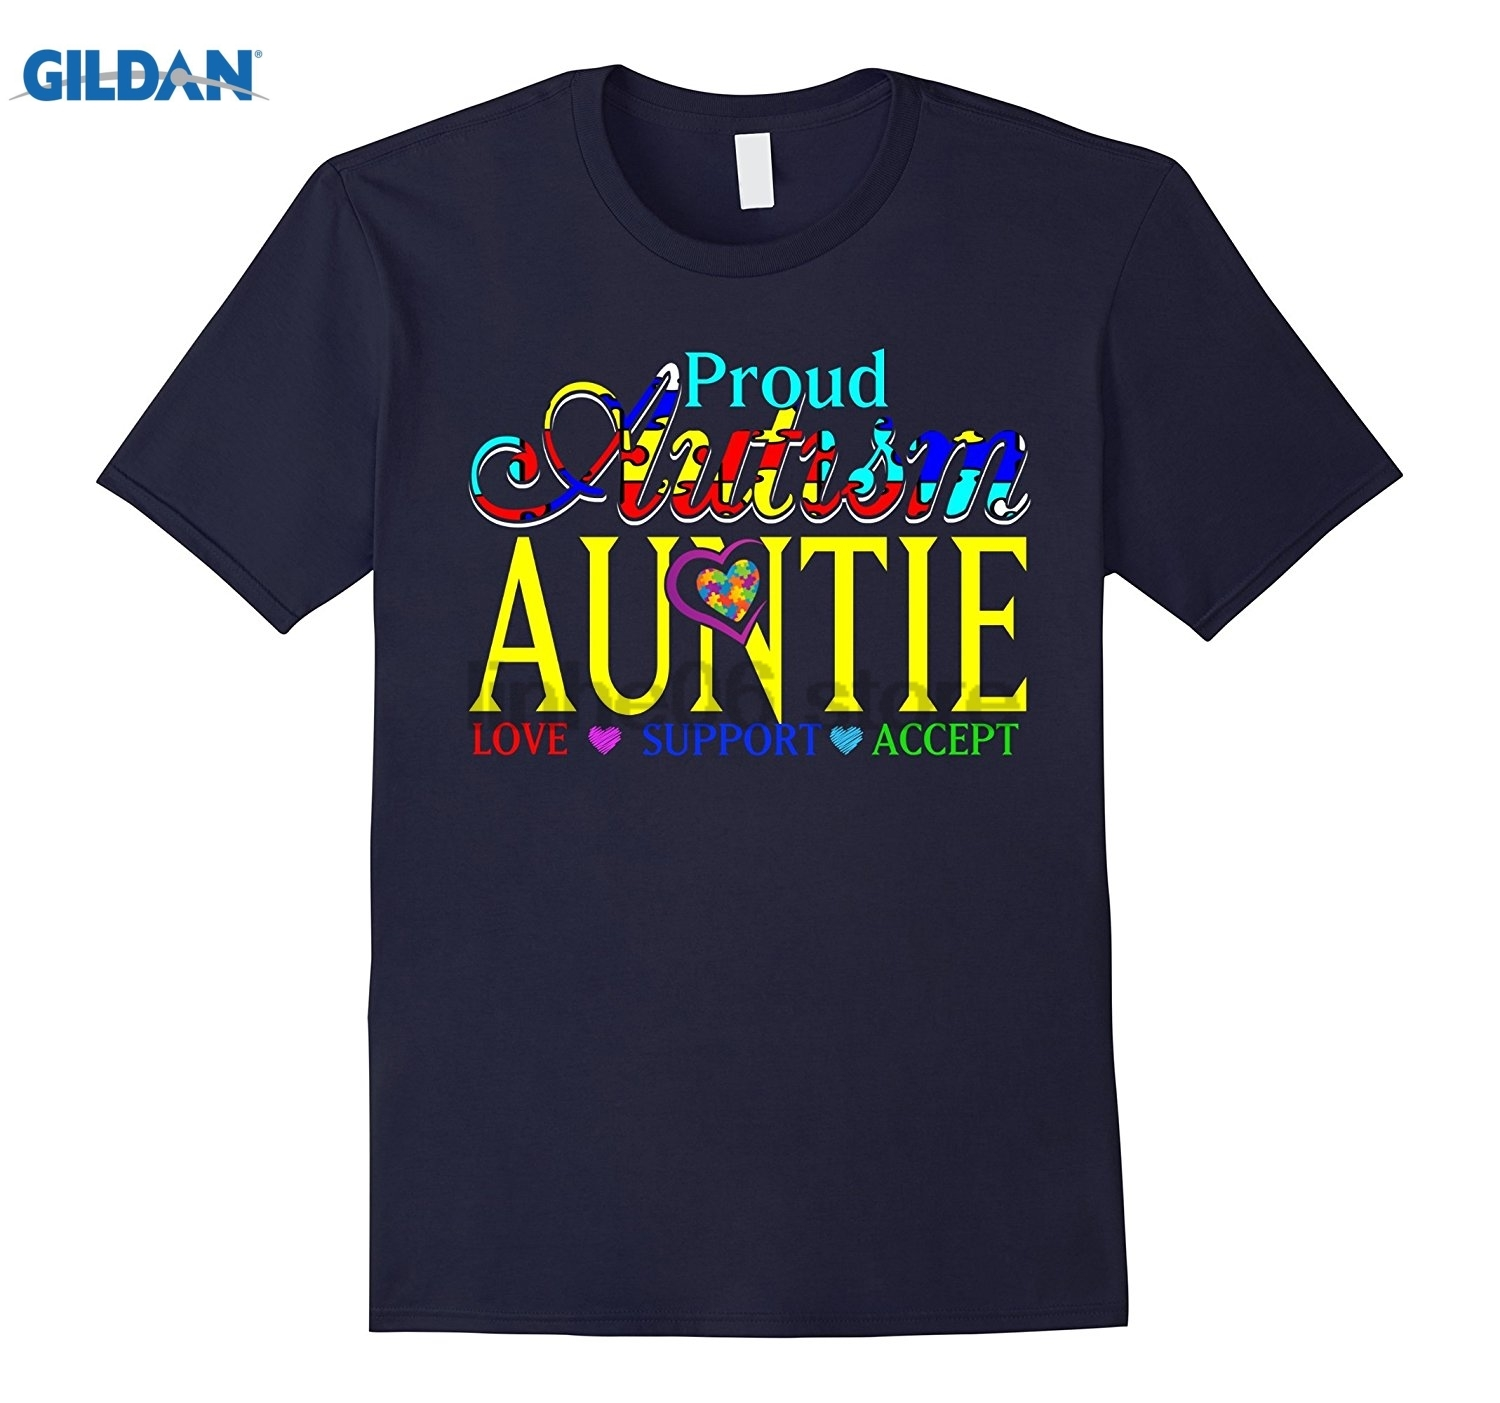 GILDAN Proud Autism Auntie Love Support Accept - Autism Gifts Tees Funny black men tee shirt cotton free shipping